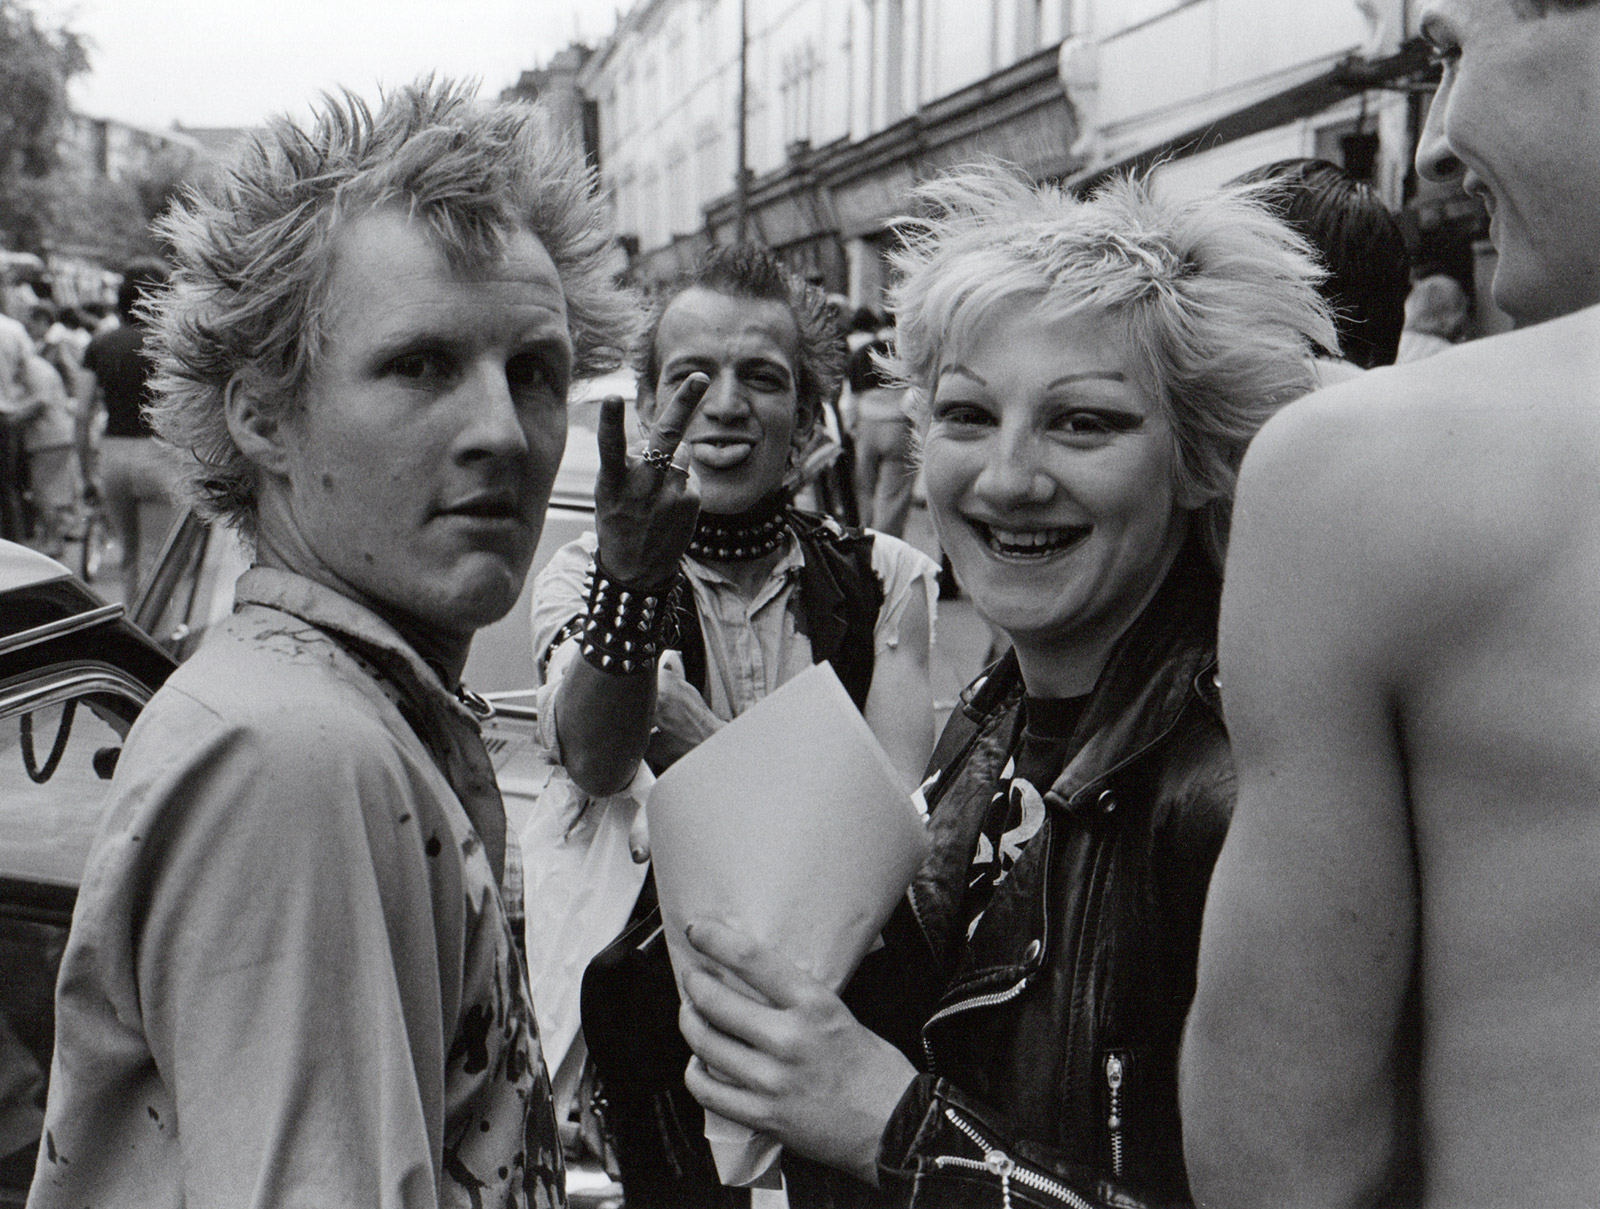 London punks